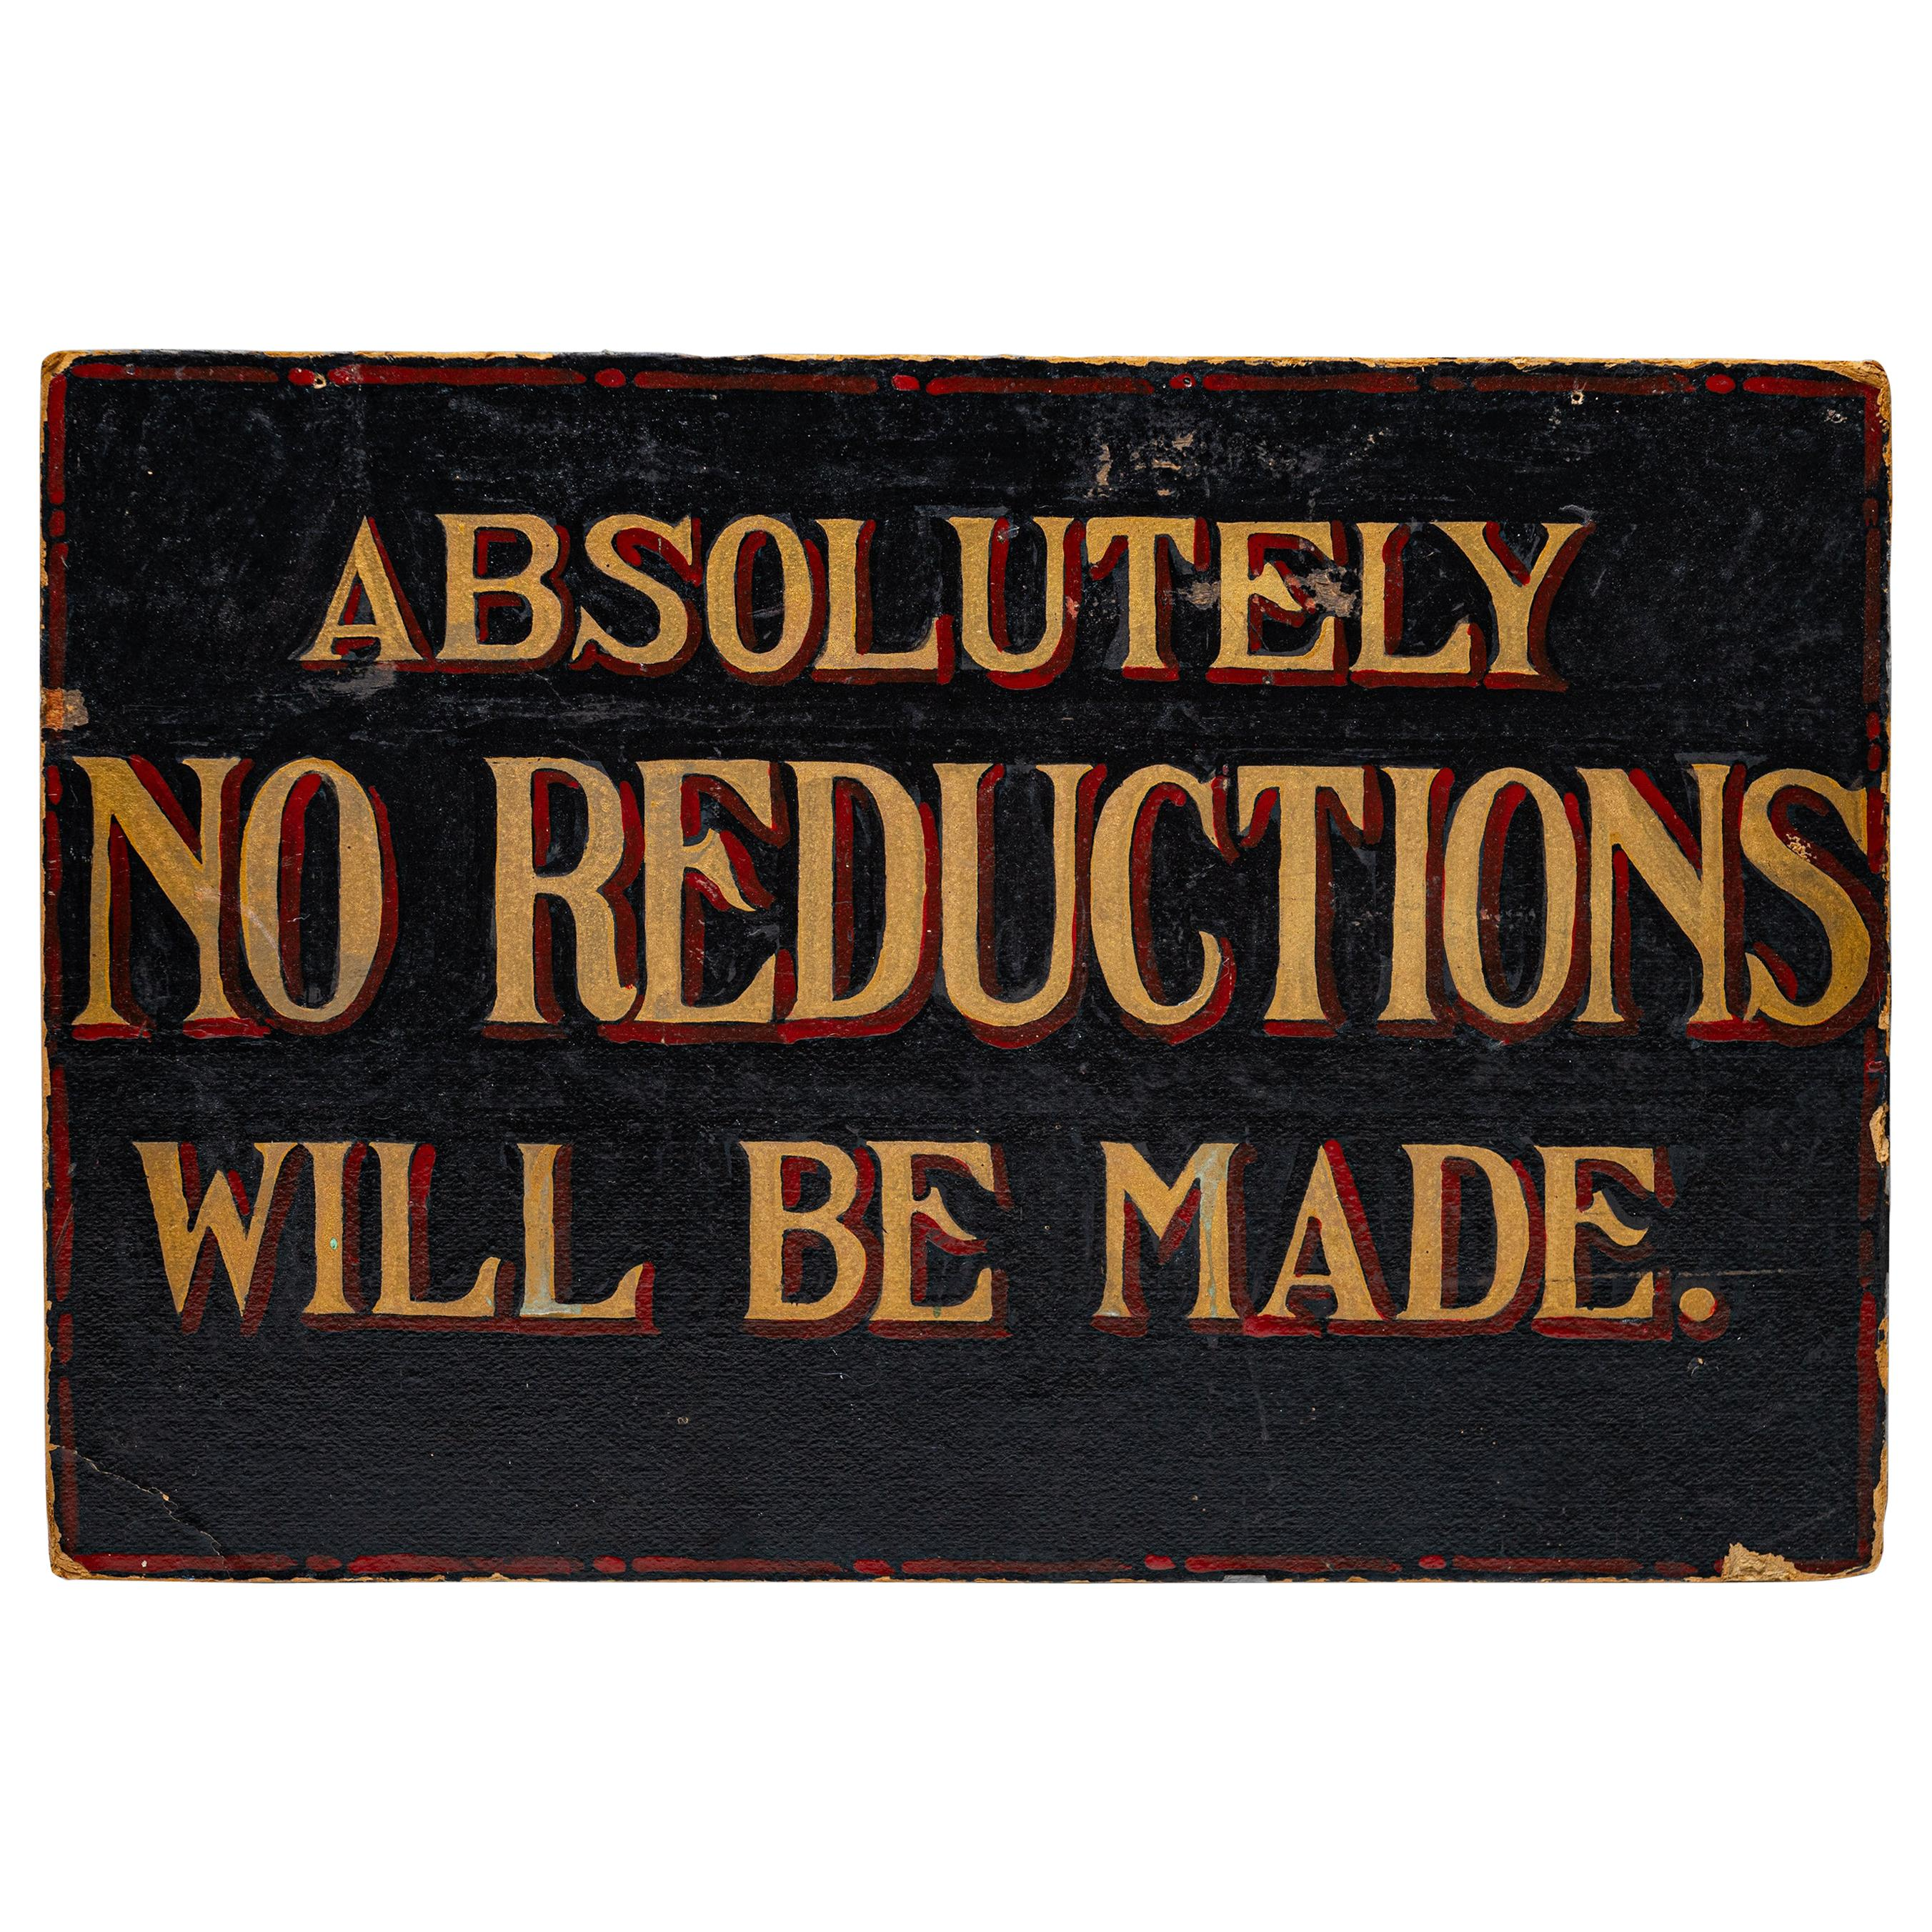 Hand Painted Sign, America, circa 1920